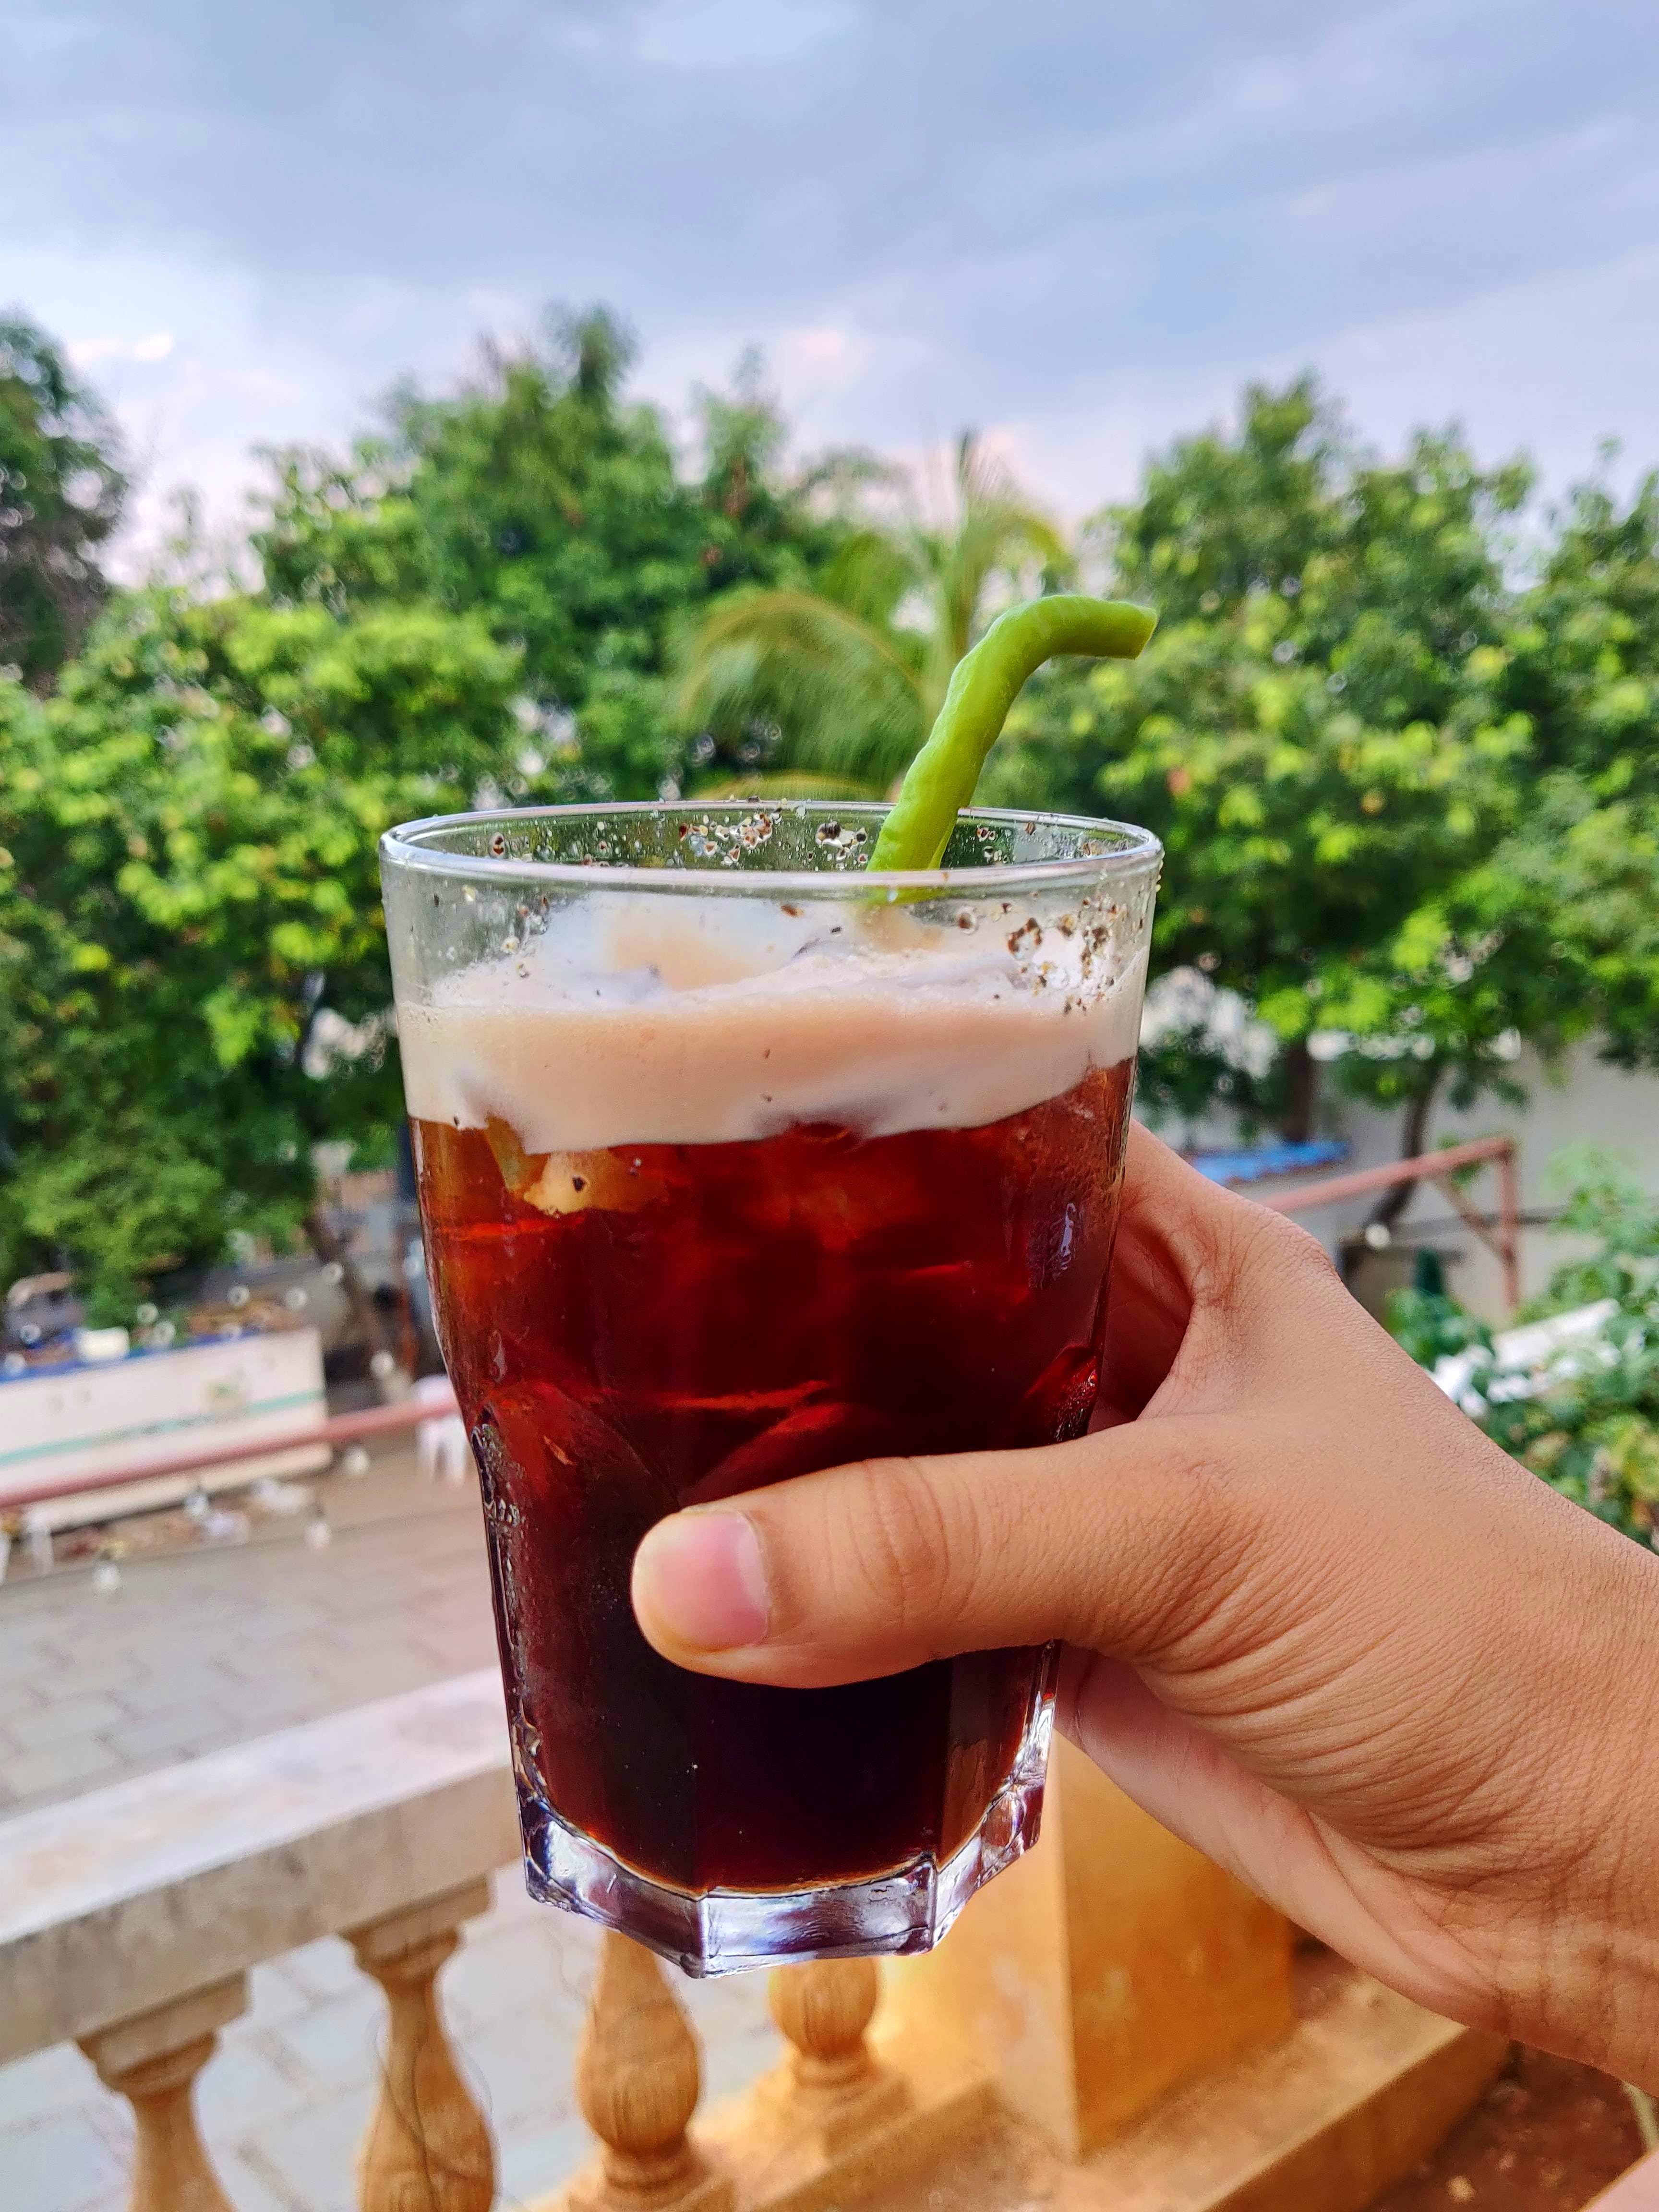 Drink,Cuba libre,Alcoholic beverage,Tinto de verano,Kalimotxo,Cocktail,Distilled beverage,Pimm's,Food,Liqueur